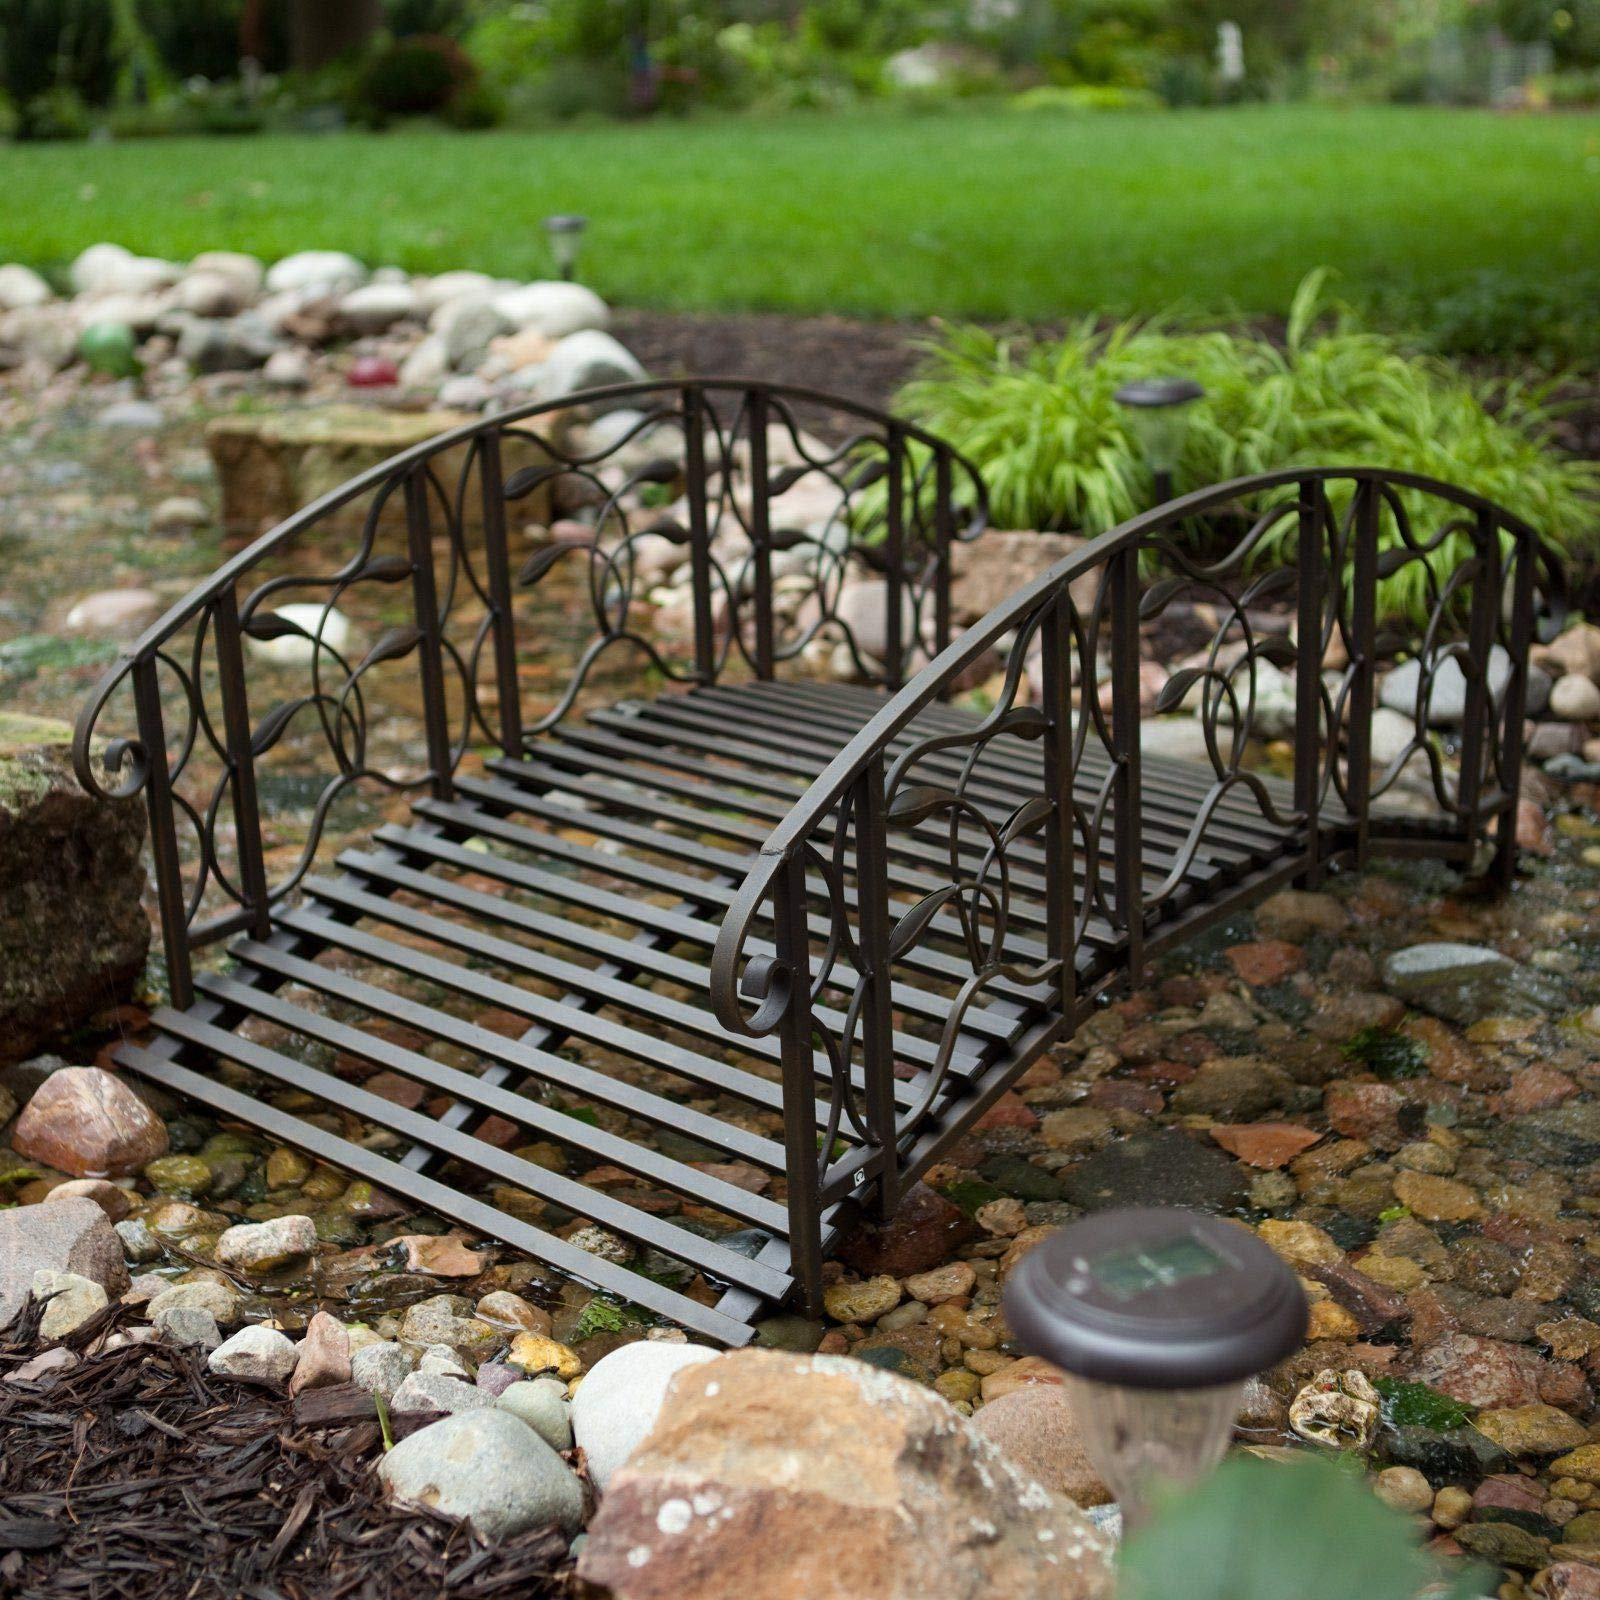 Home Improvements Weathered Black Finish Metal 4 Foot Garden Bridge Outdoor Yard Lawn Landscaping by Home Improvements (Image #1)